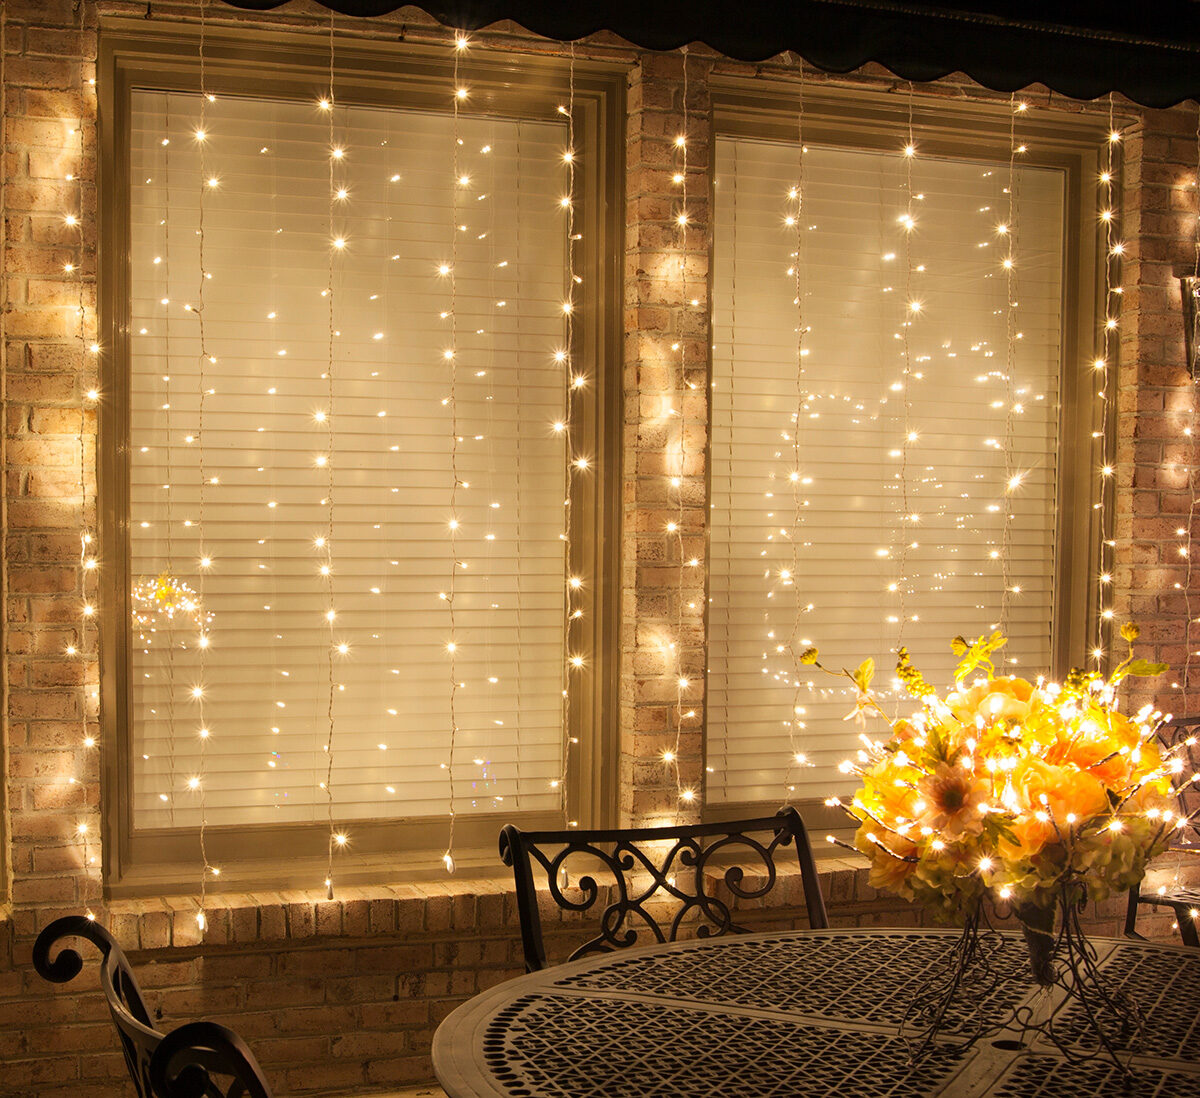 Diy Led Uplighting Rental Atlanta: Spoiler Alert! DIY Curtain Lights Are Easier Than You